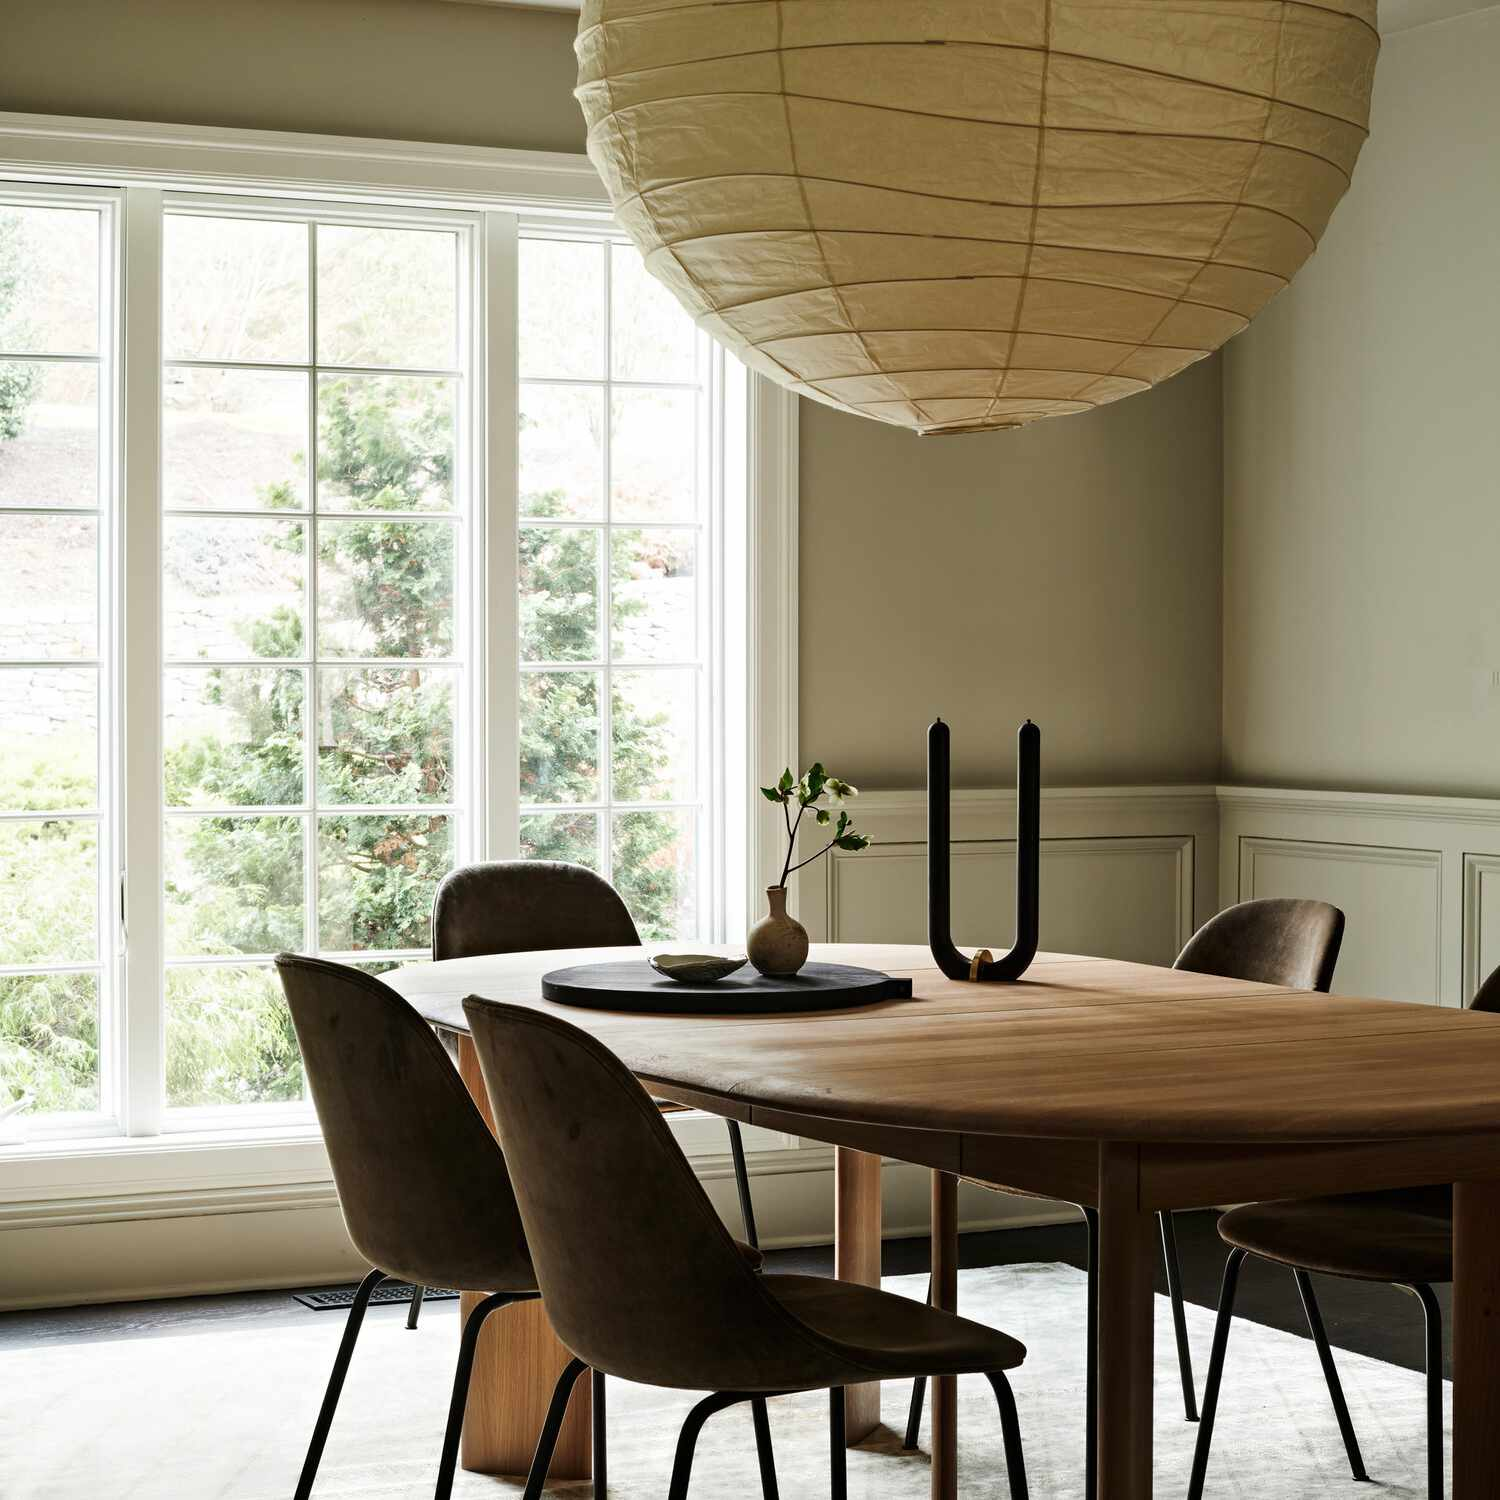 A dining room table topped with sleek black decor